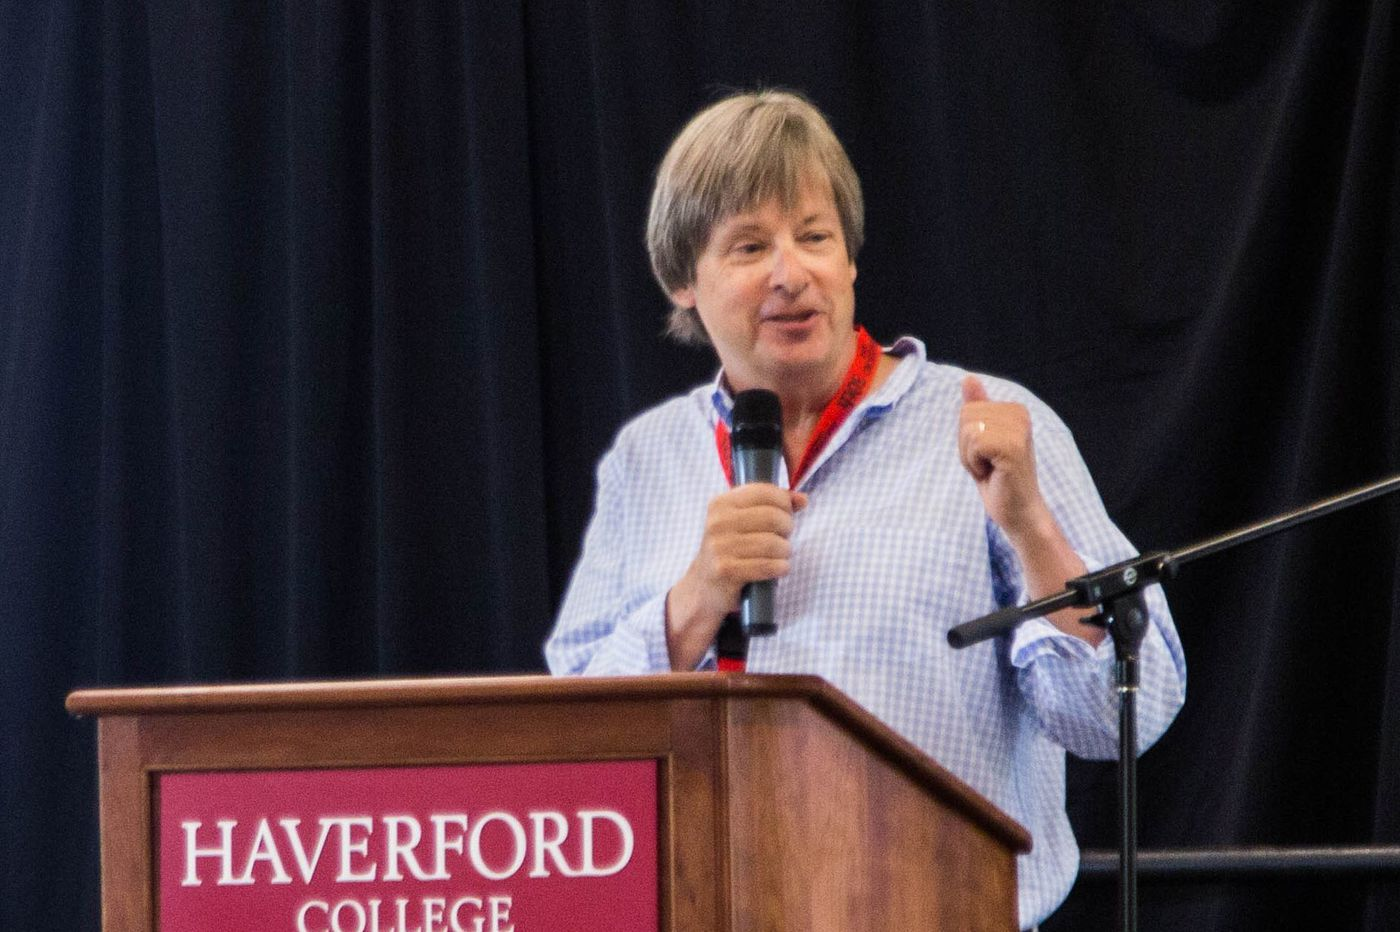 Dave Barry Stops By to Chat at Haverford College 50th Reunion